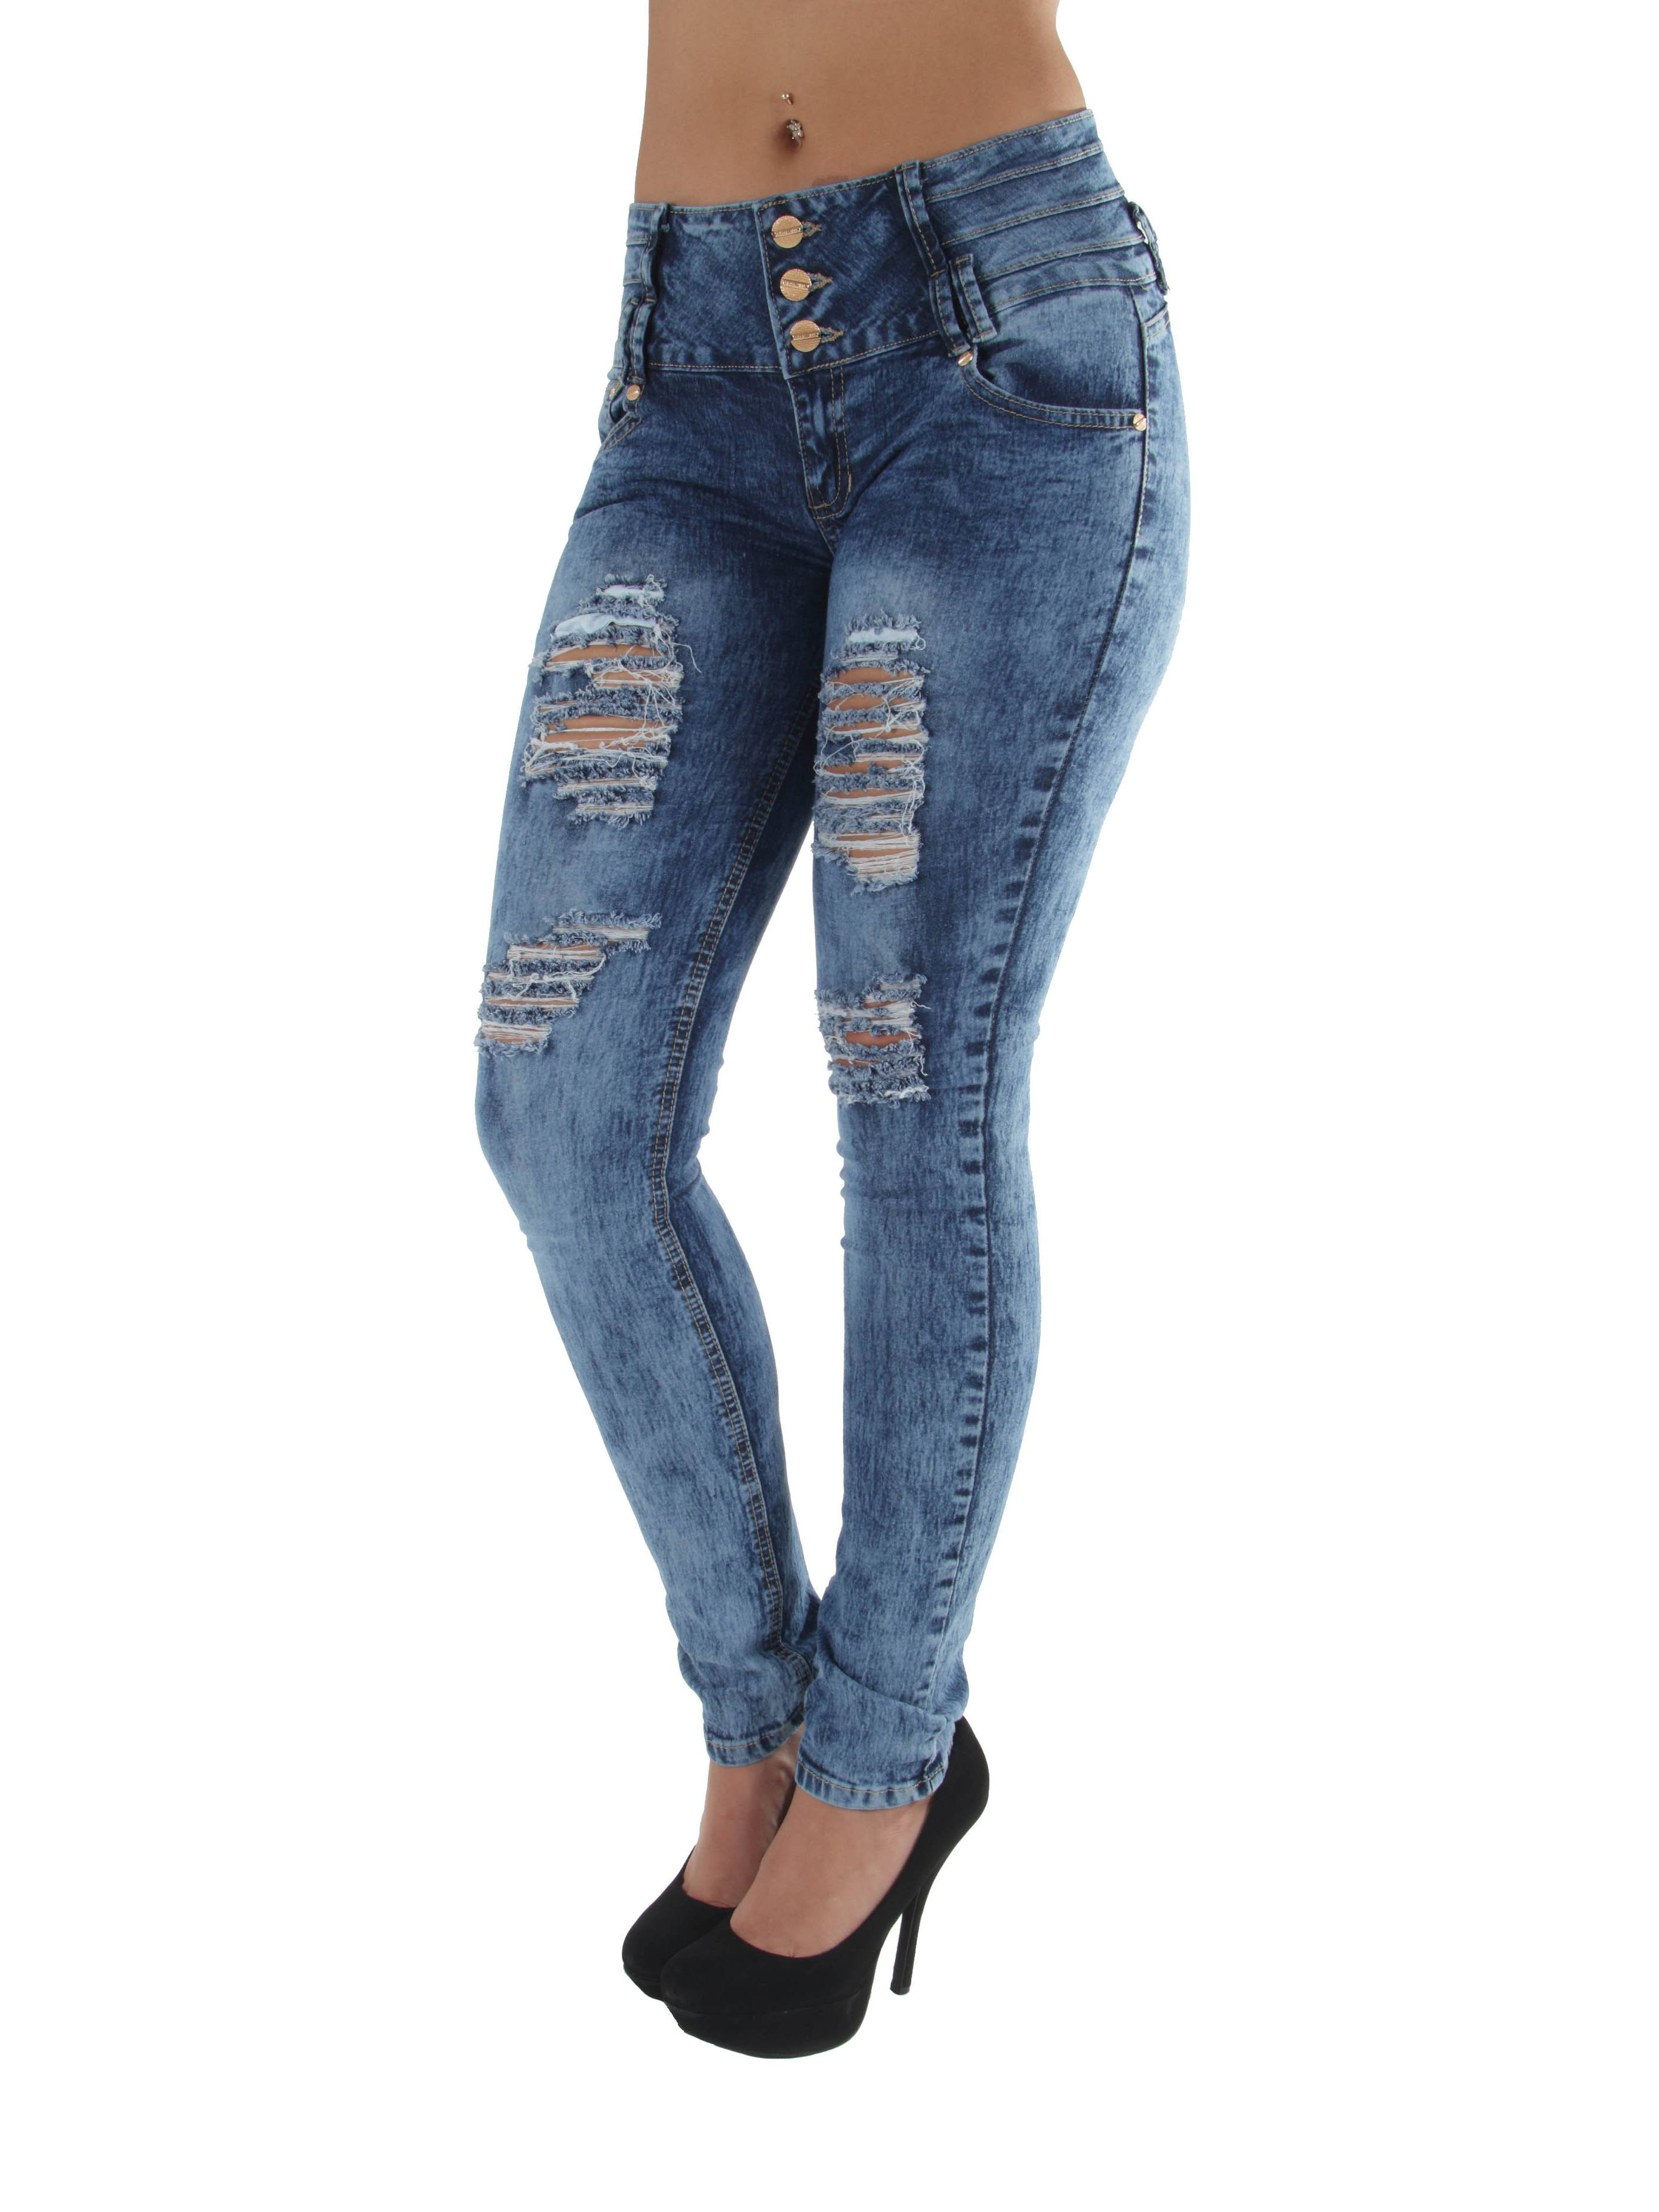 YC1691R - Butt Lifting, Levanta Cola, Ripped, Destroyed, Mid Waist, Skinny Jeans